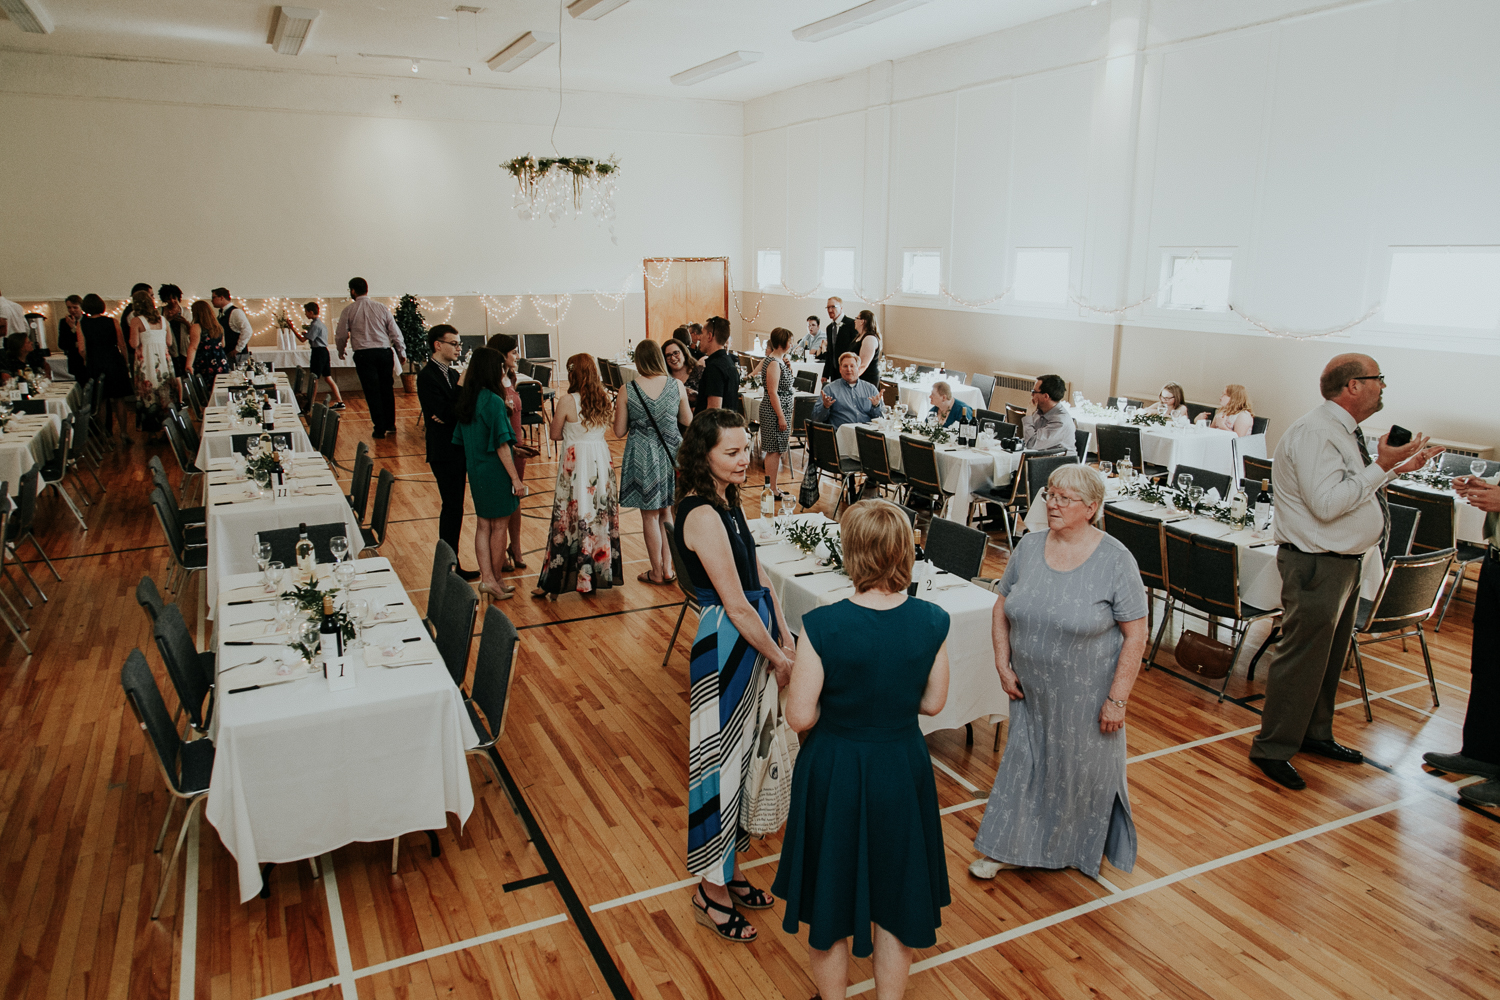 lethbridge-wedding-photographer-love-and-be-loved-photography-dan-tynnea-picture-image-photo-162.jpg